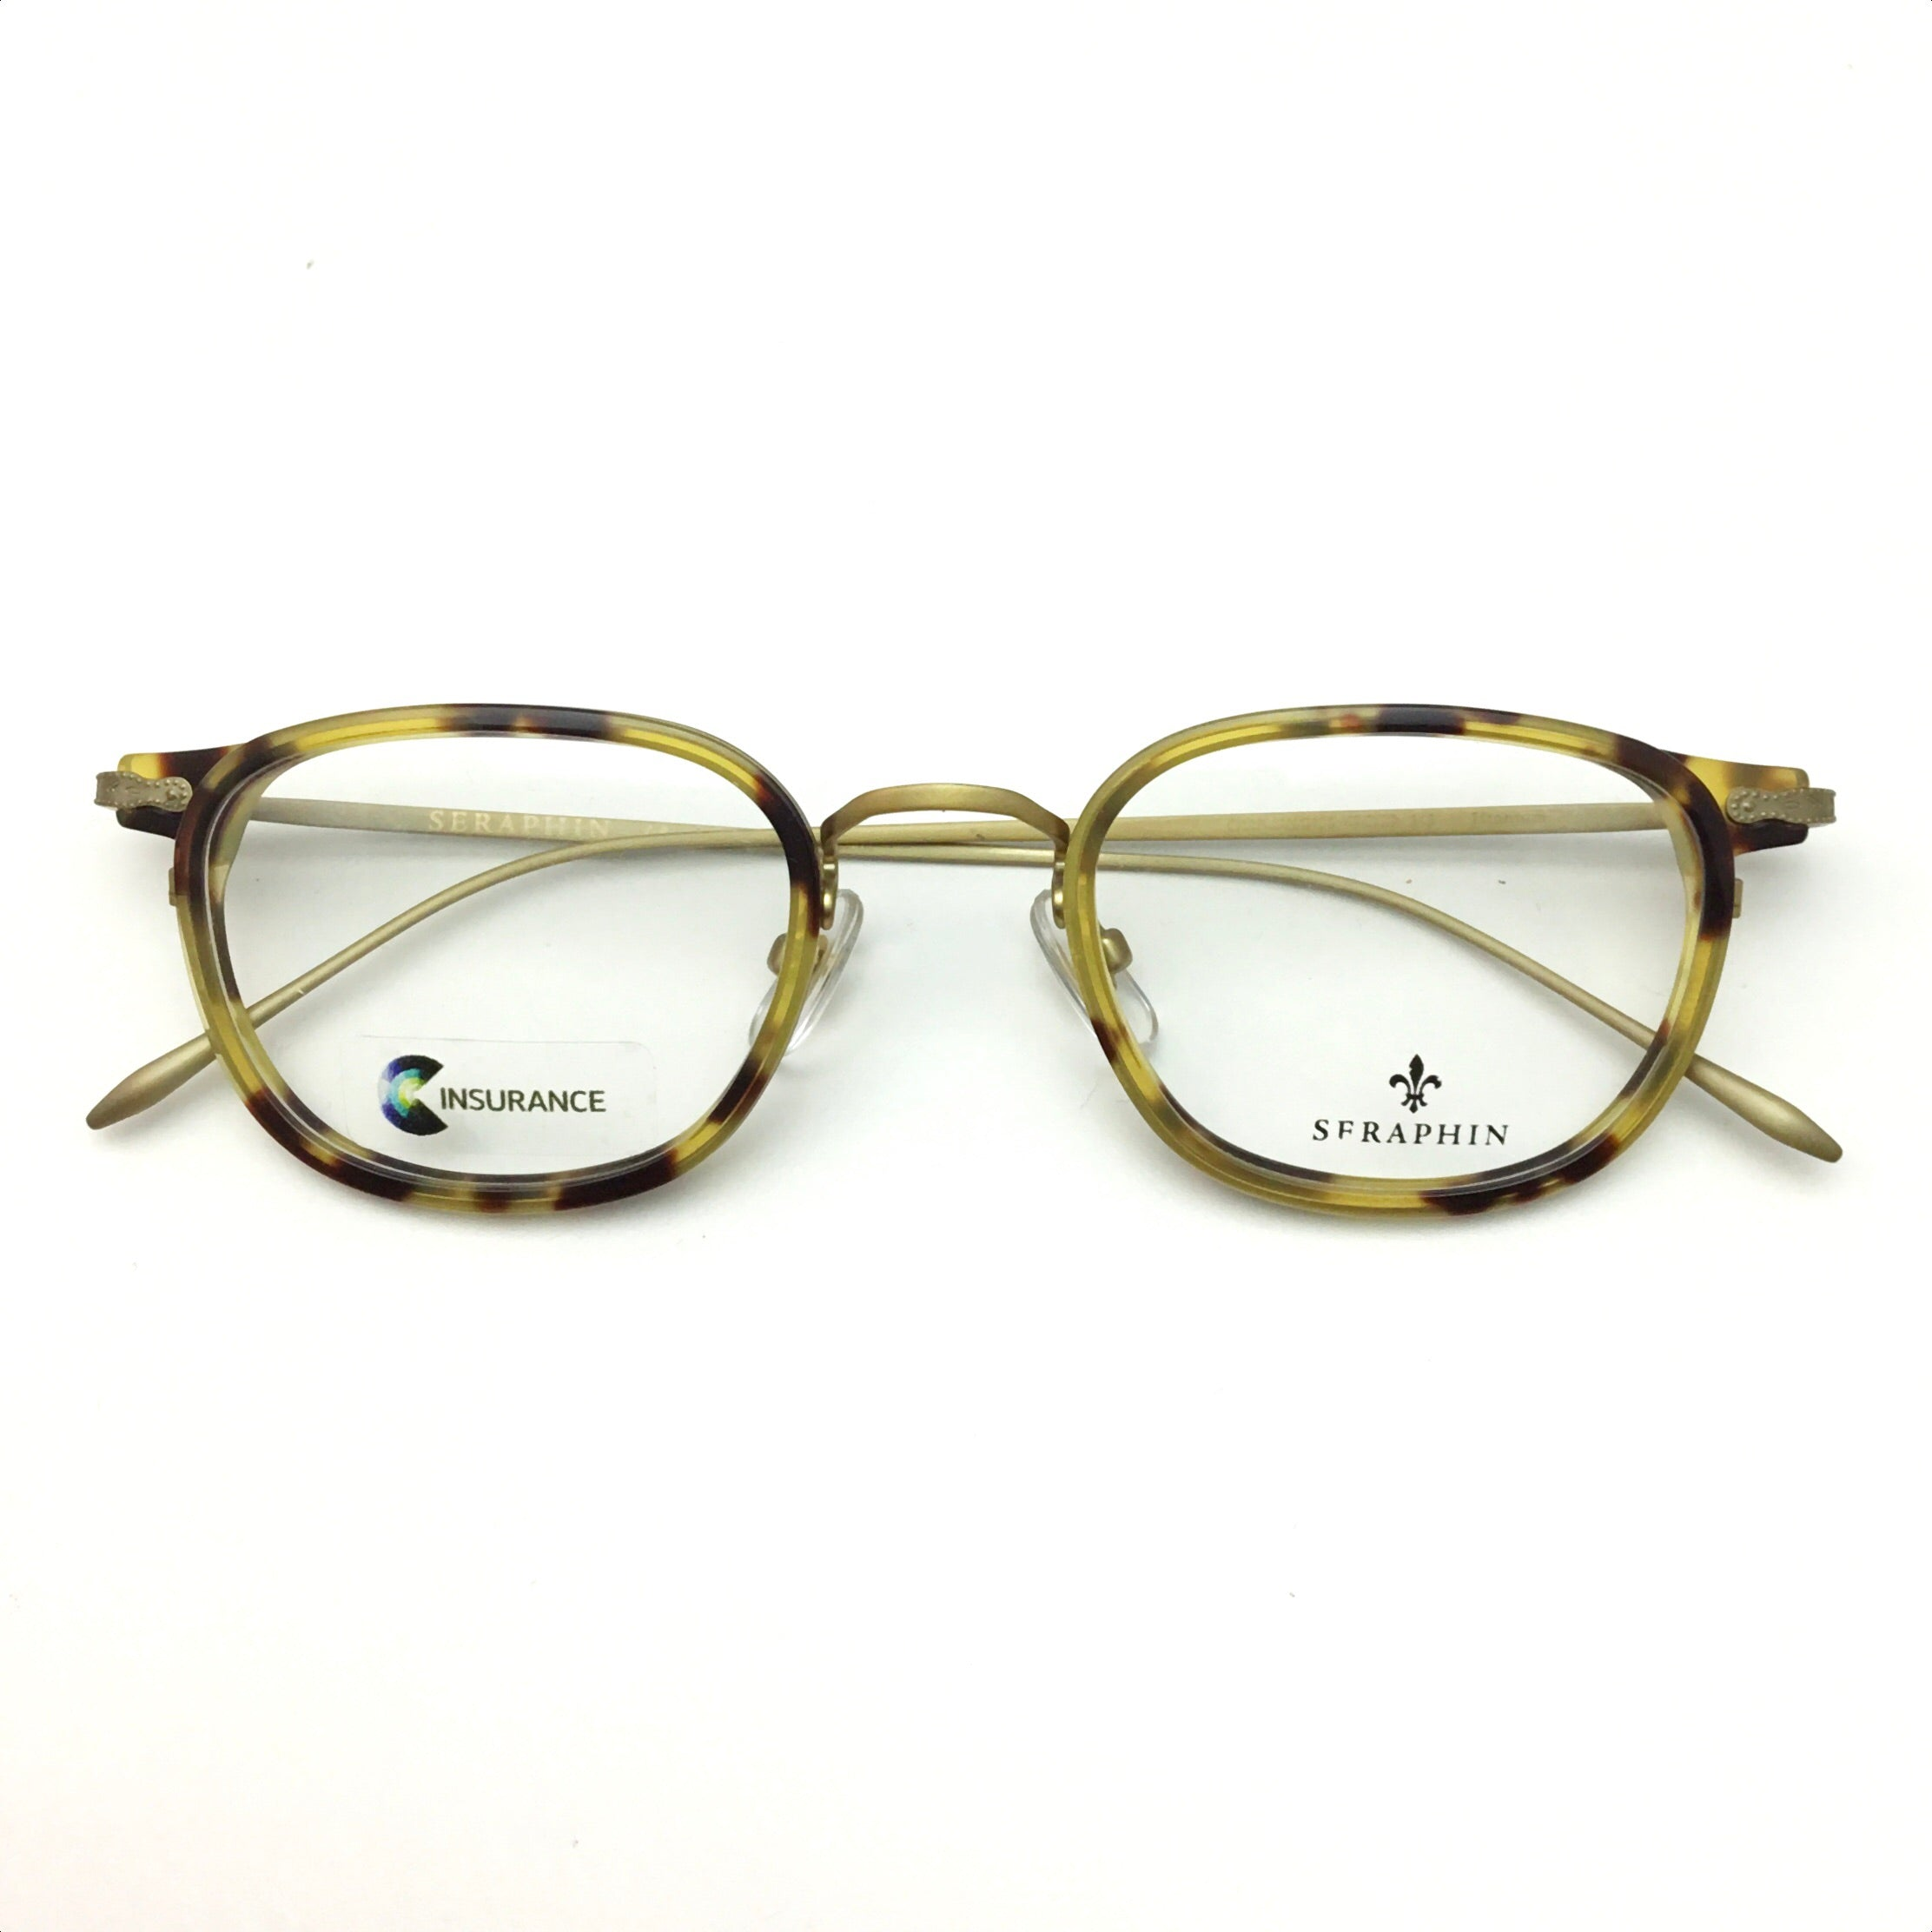 Sarafin Glasses $299 JAPAN P5